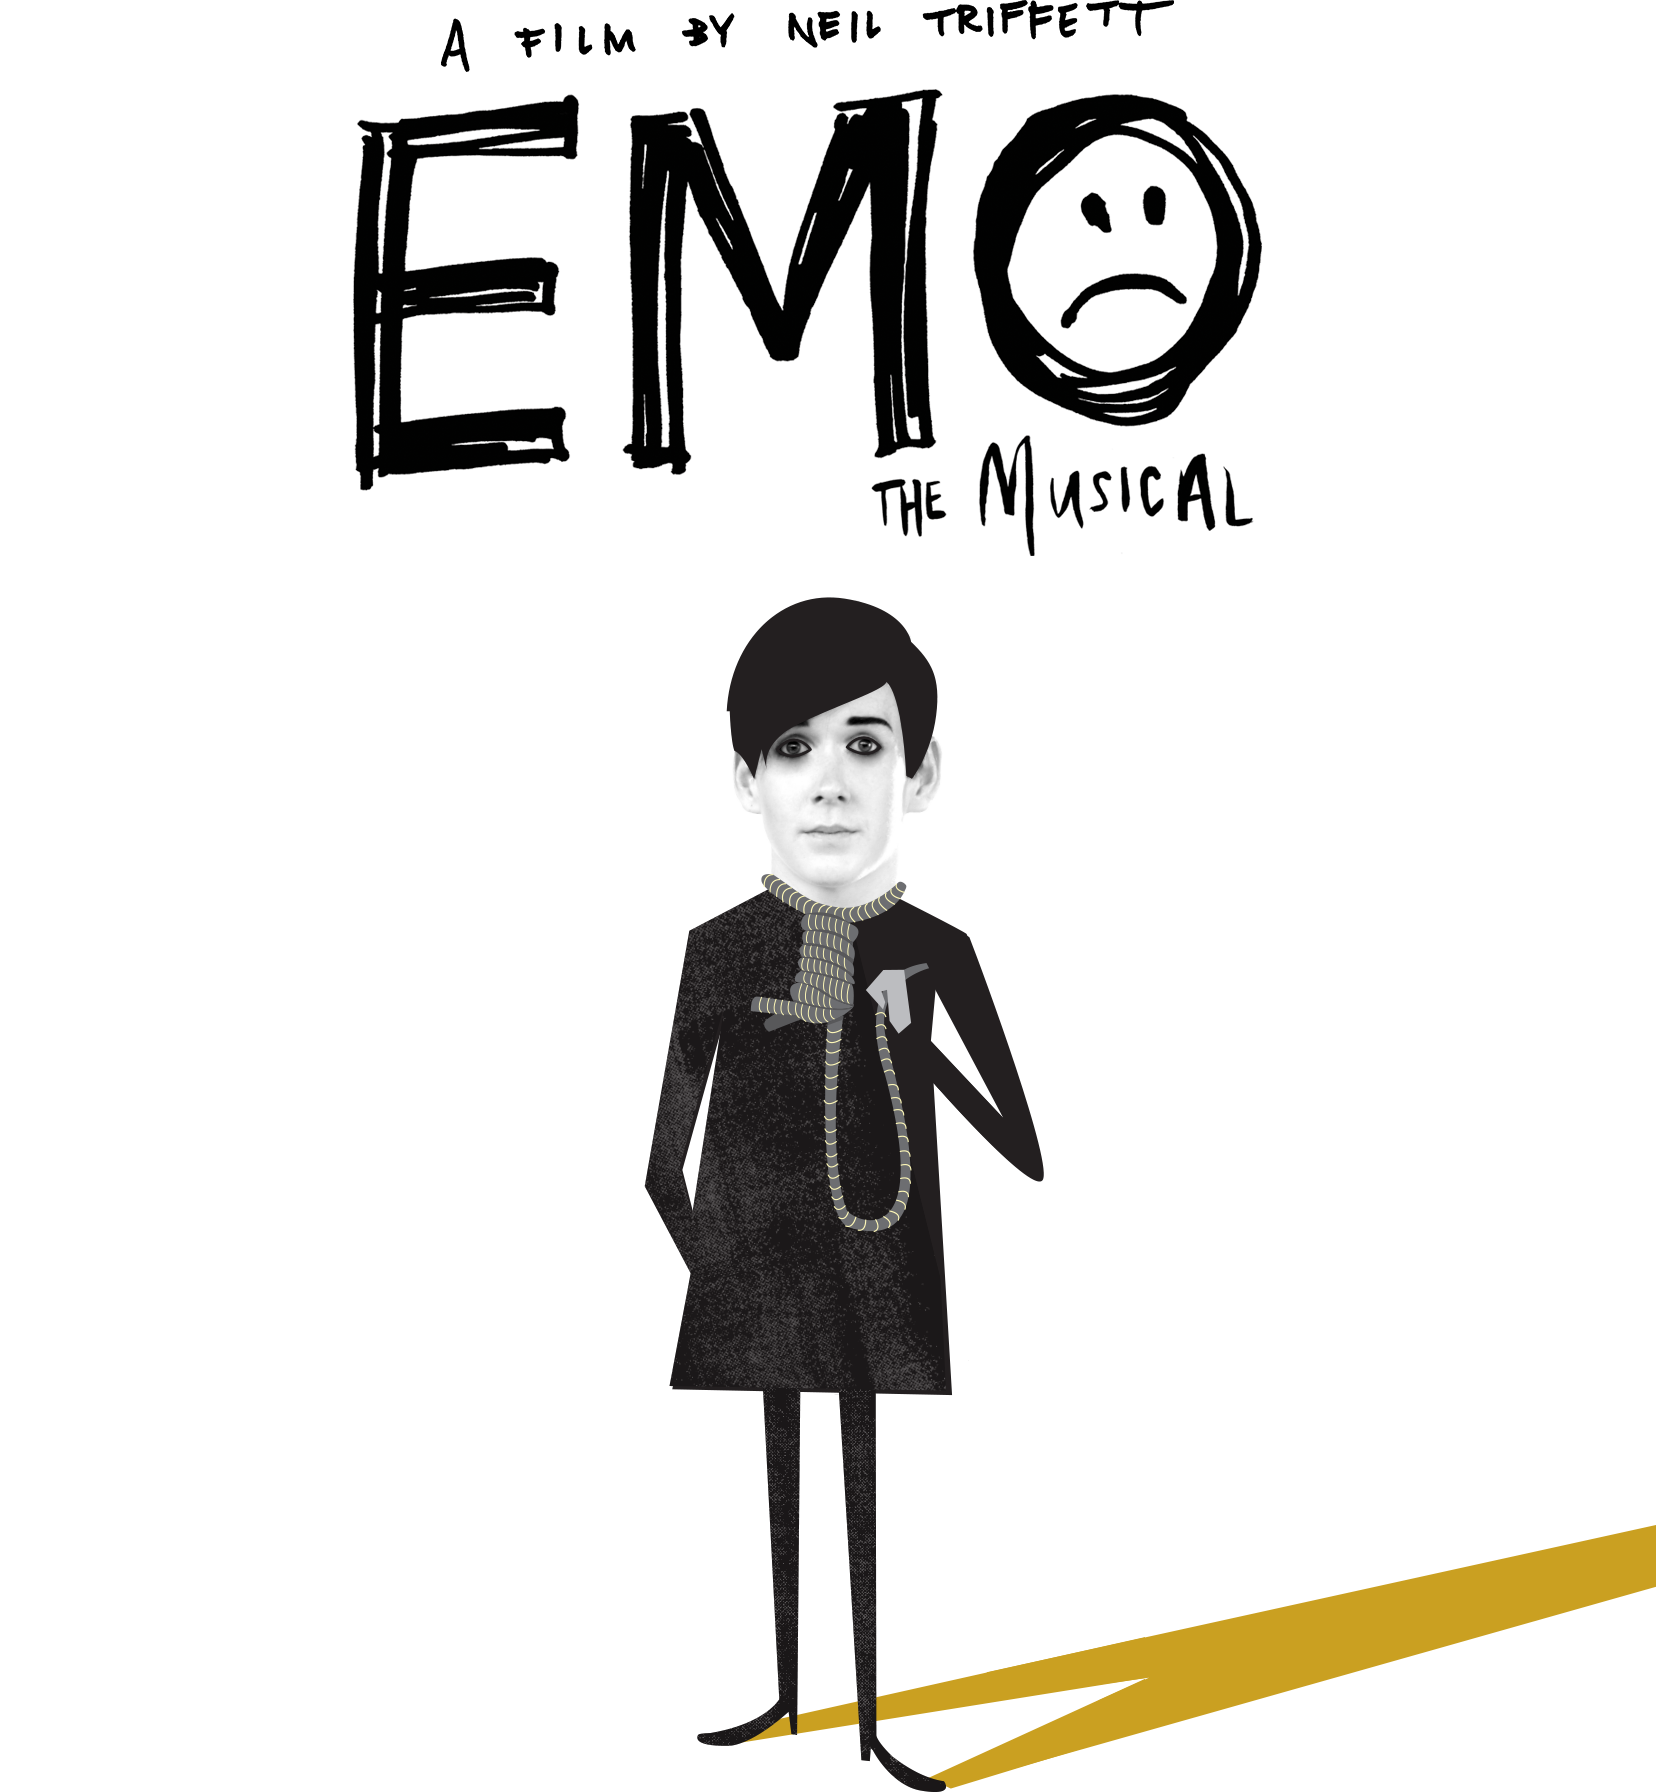 Bullying drawing emo. Ethan the musical